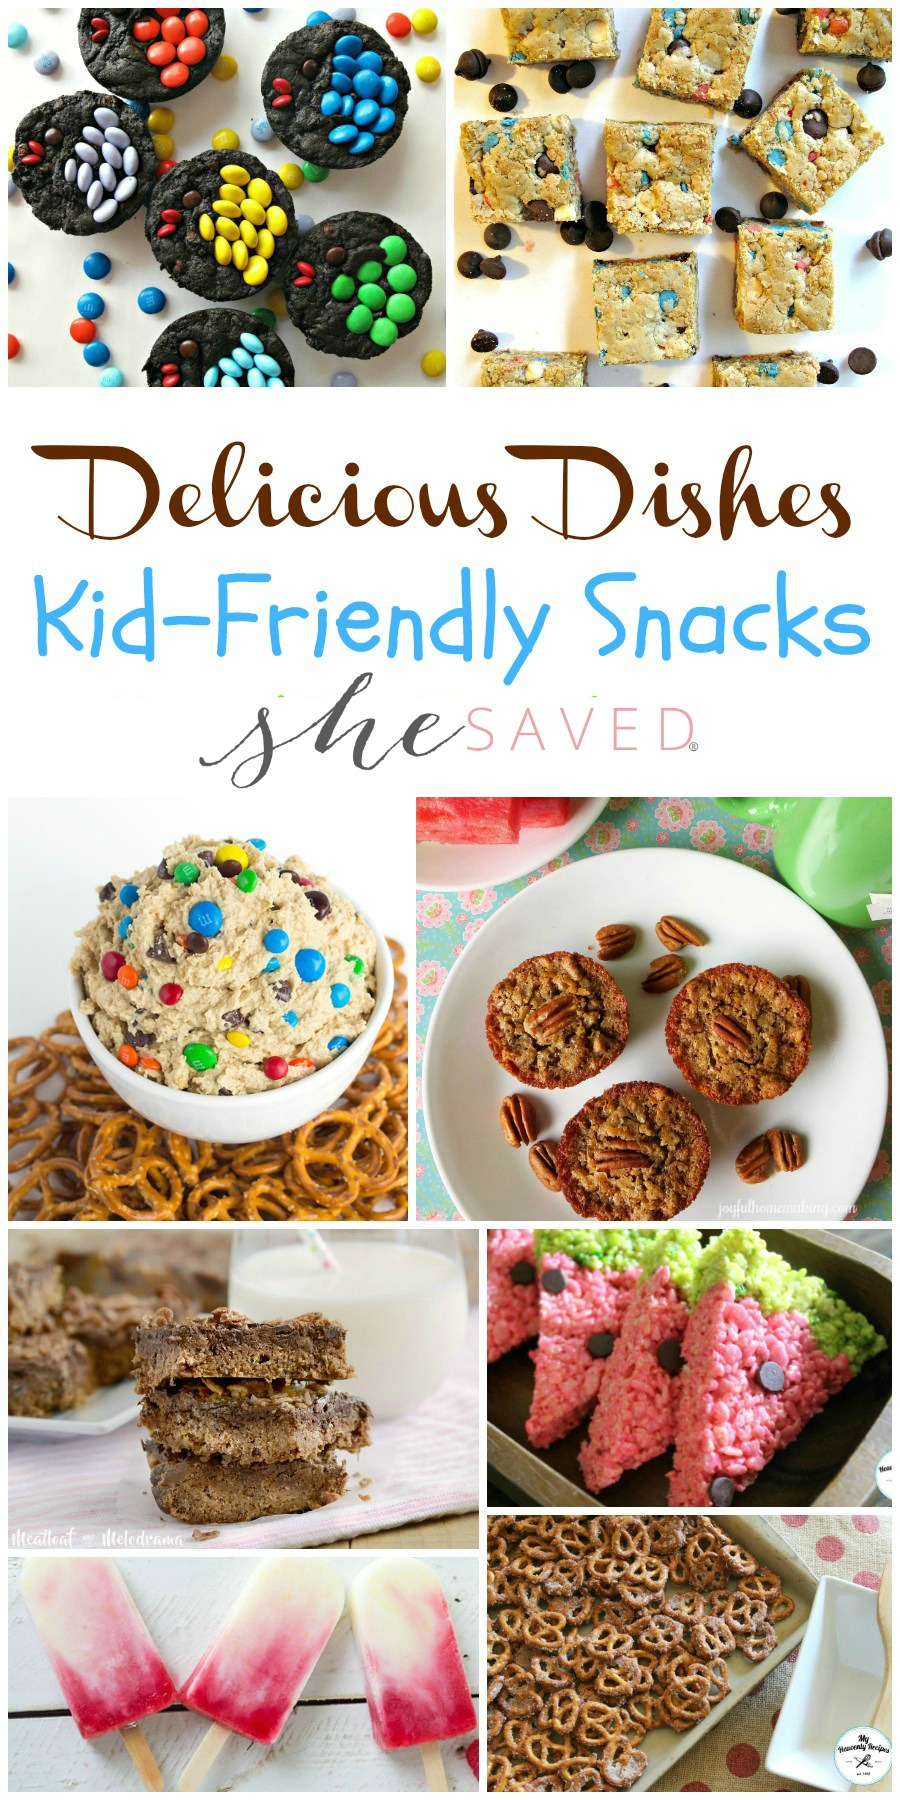 Here's a fun list of kid friendly snacks that will come in really handy for summer parties and picnics and even for back to school!